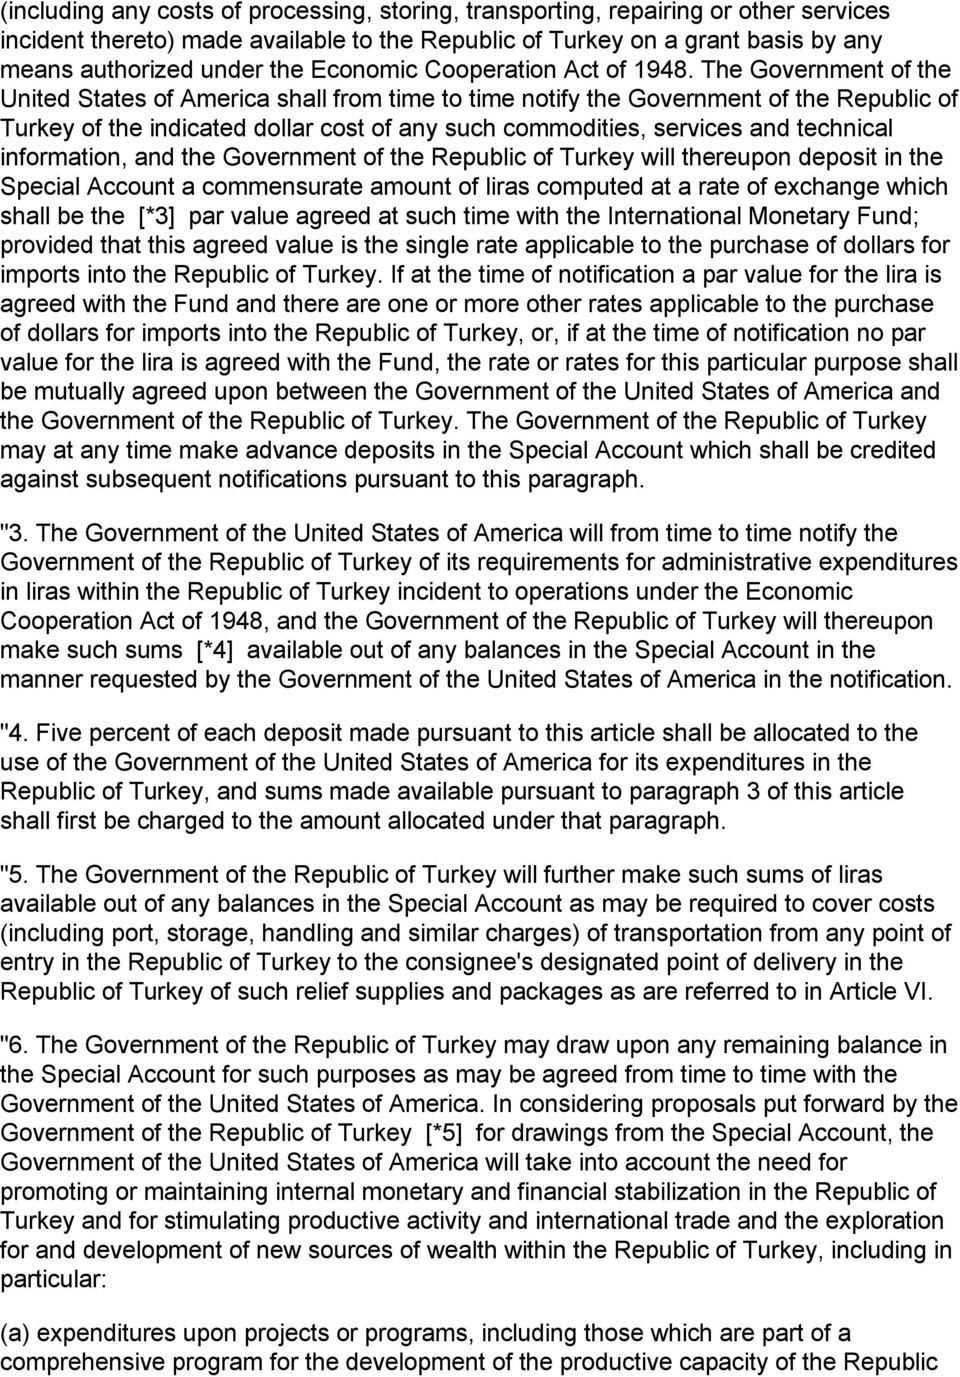 The Government of the United States of America shall from time to time notify the Government of the Republic of Turkey of the indicated dollar cost of any such commodities, services and technical